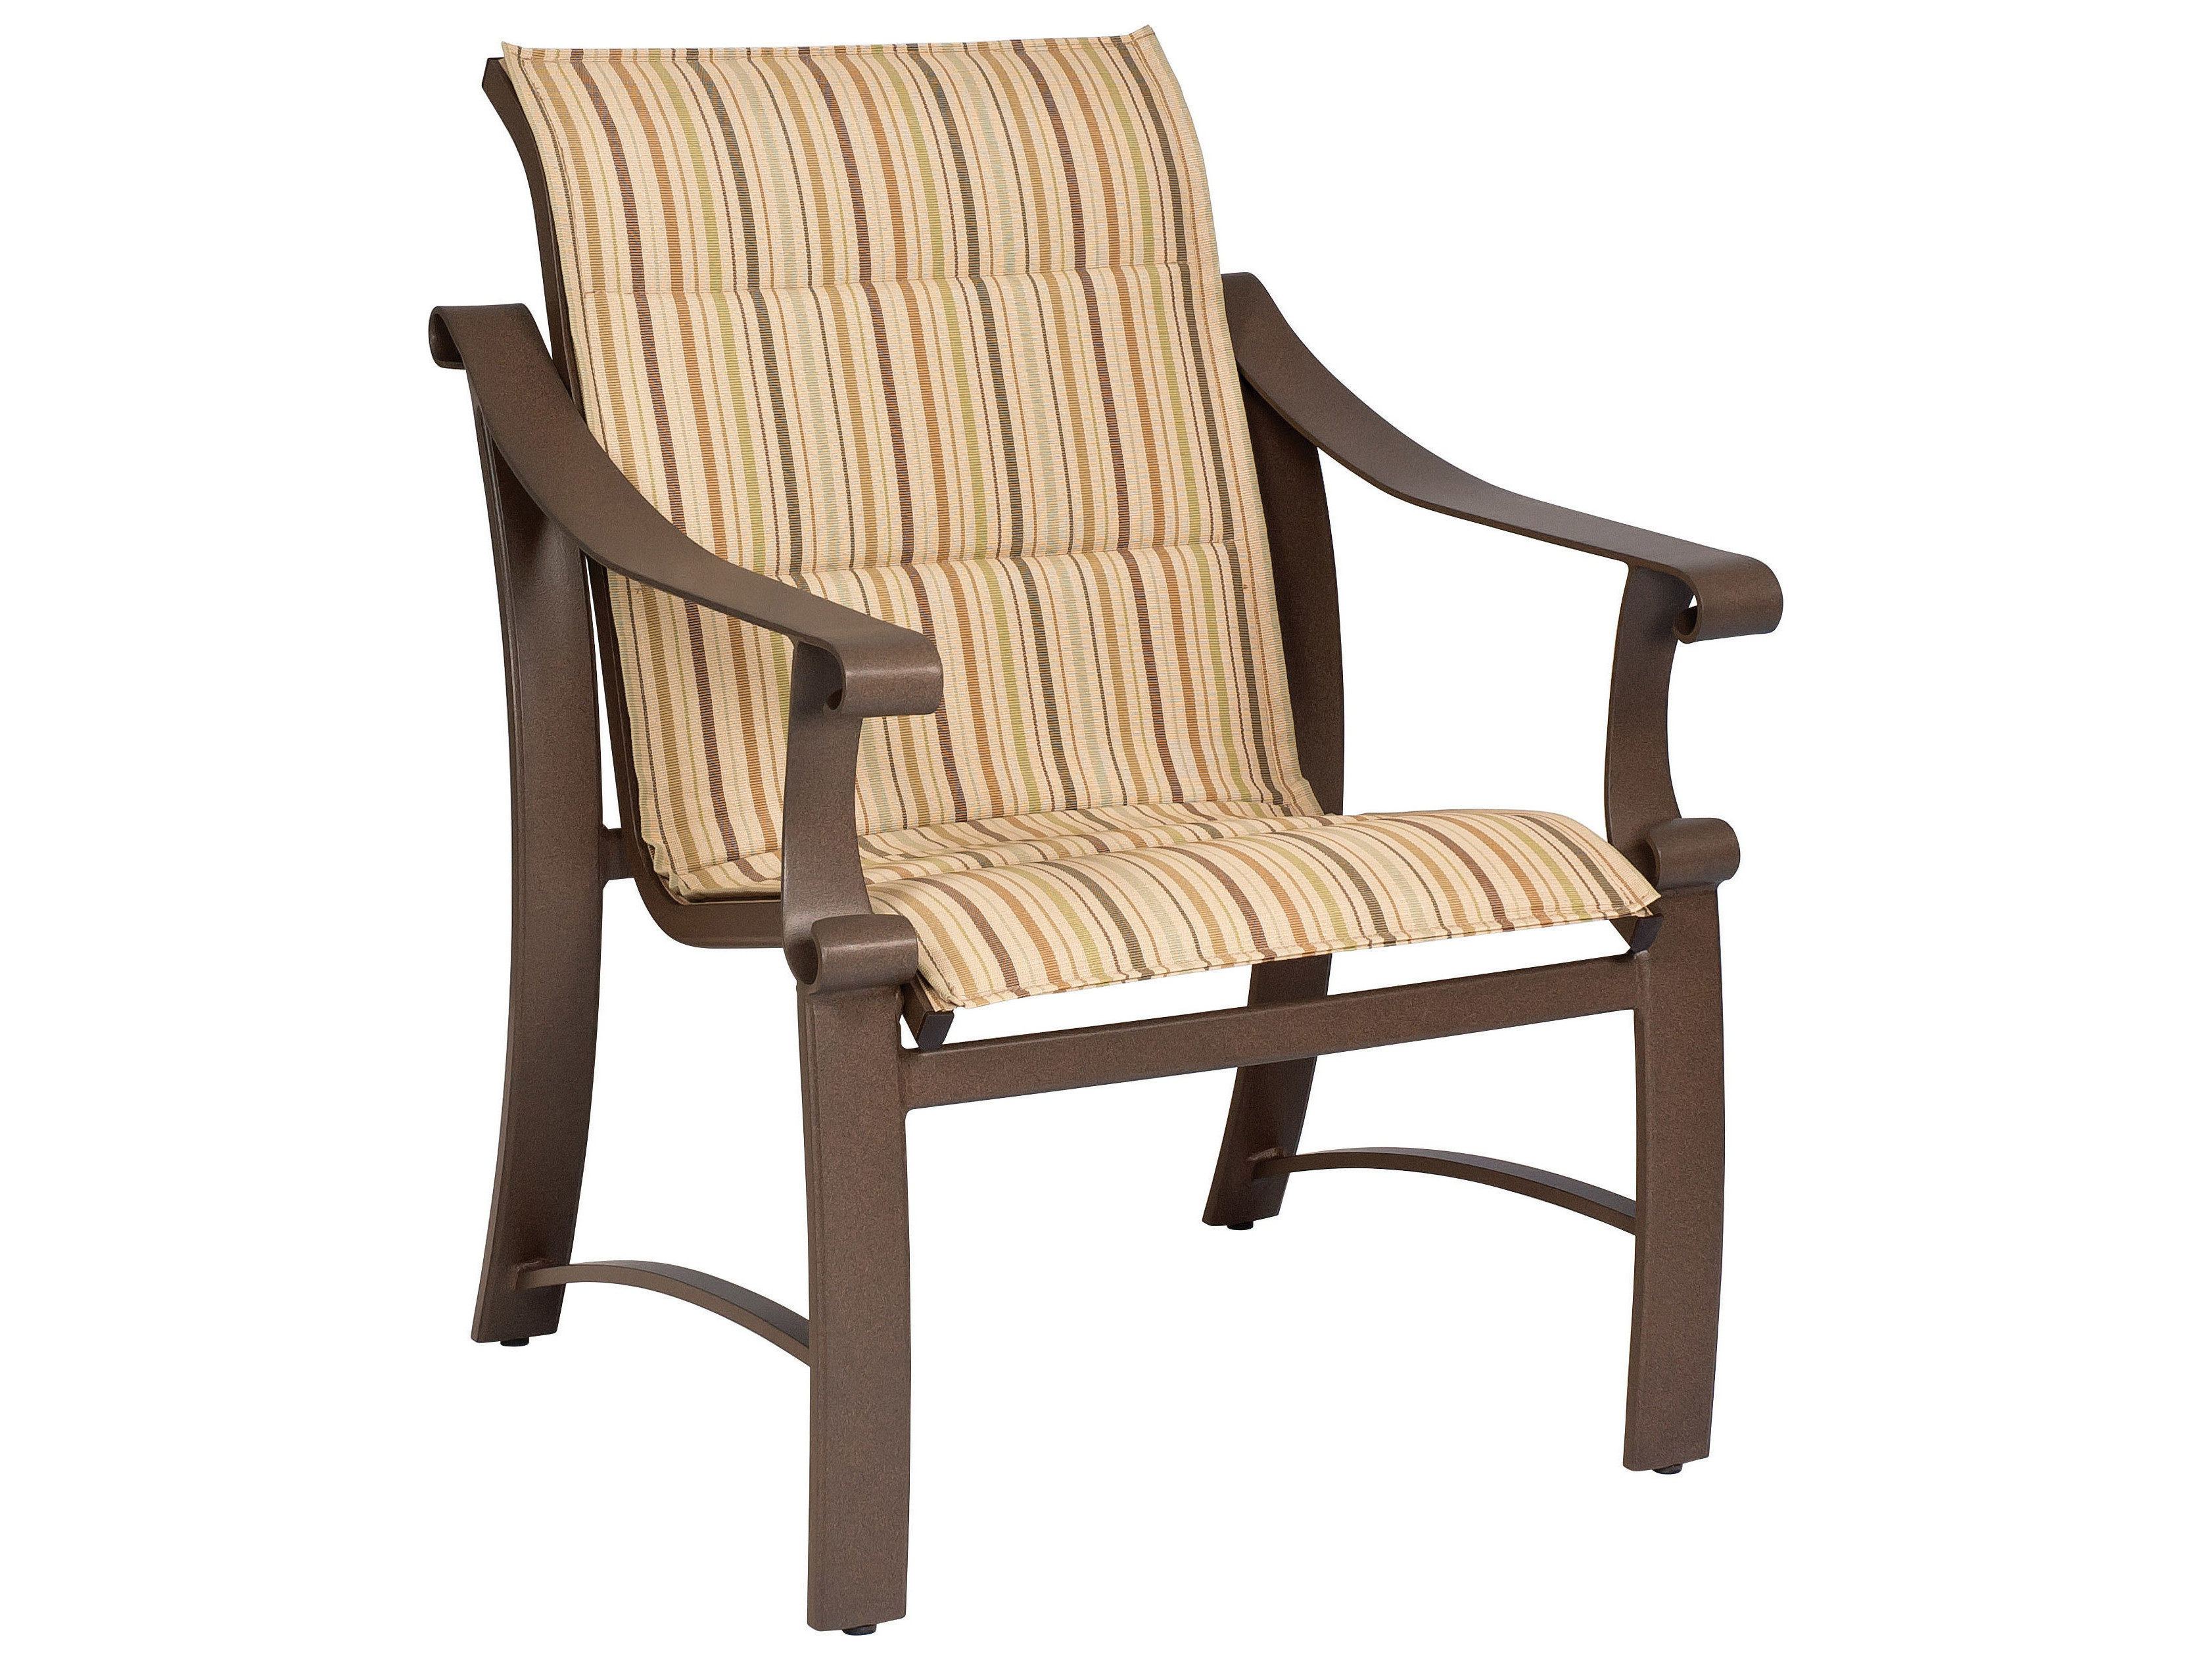 Woodard Bungalow Padded Sling Aluminum Dining Chair 830501